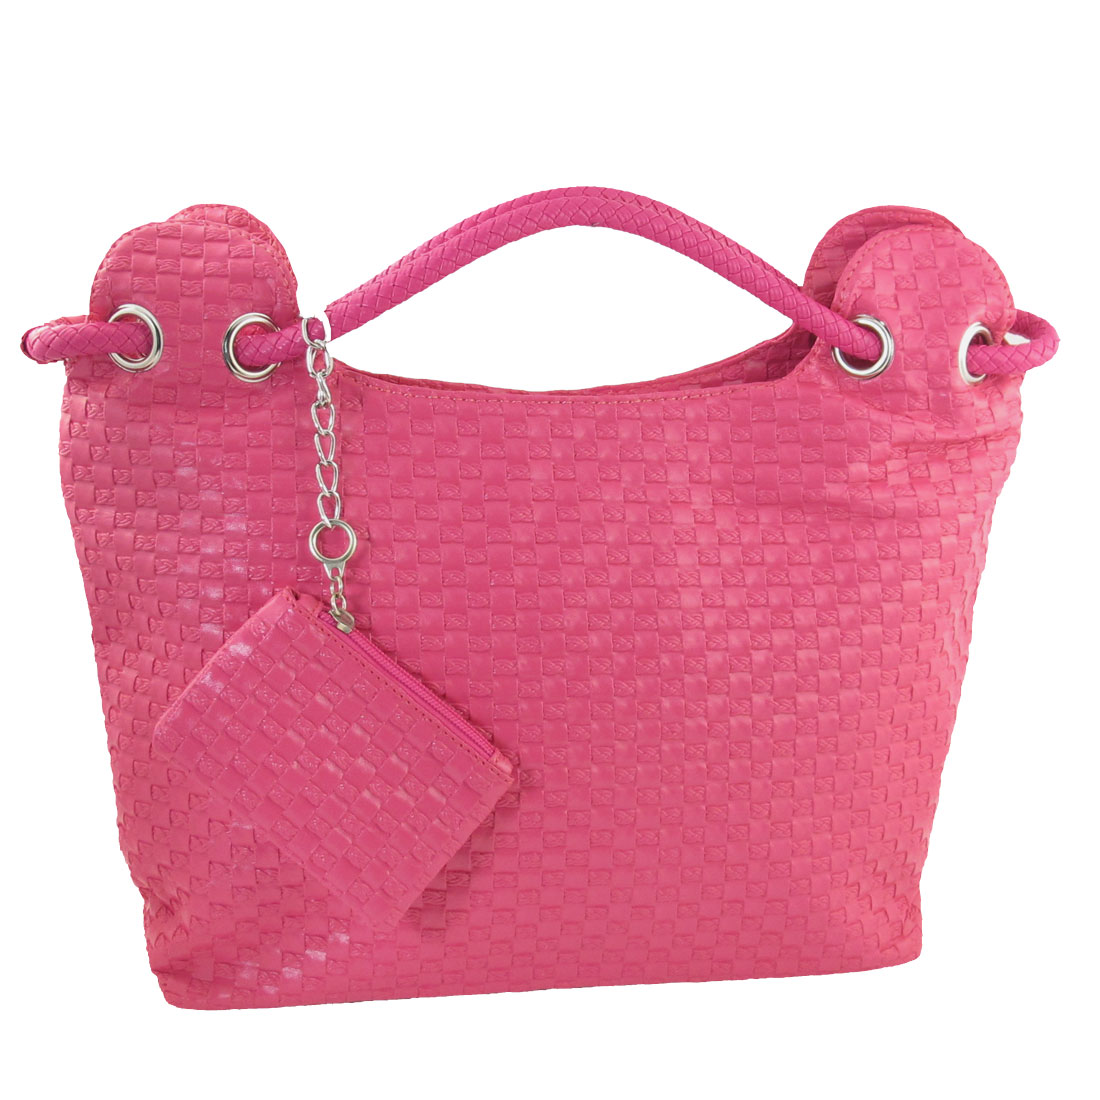 Women Travel Woven Print Pink Faux Leather Cosmetic Holder Handbag Bag